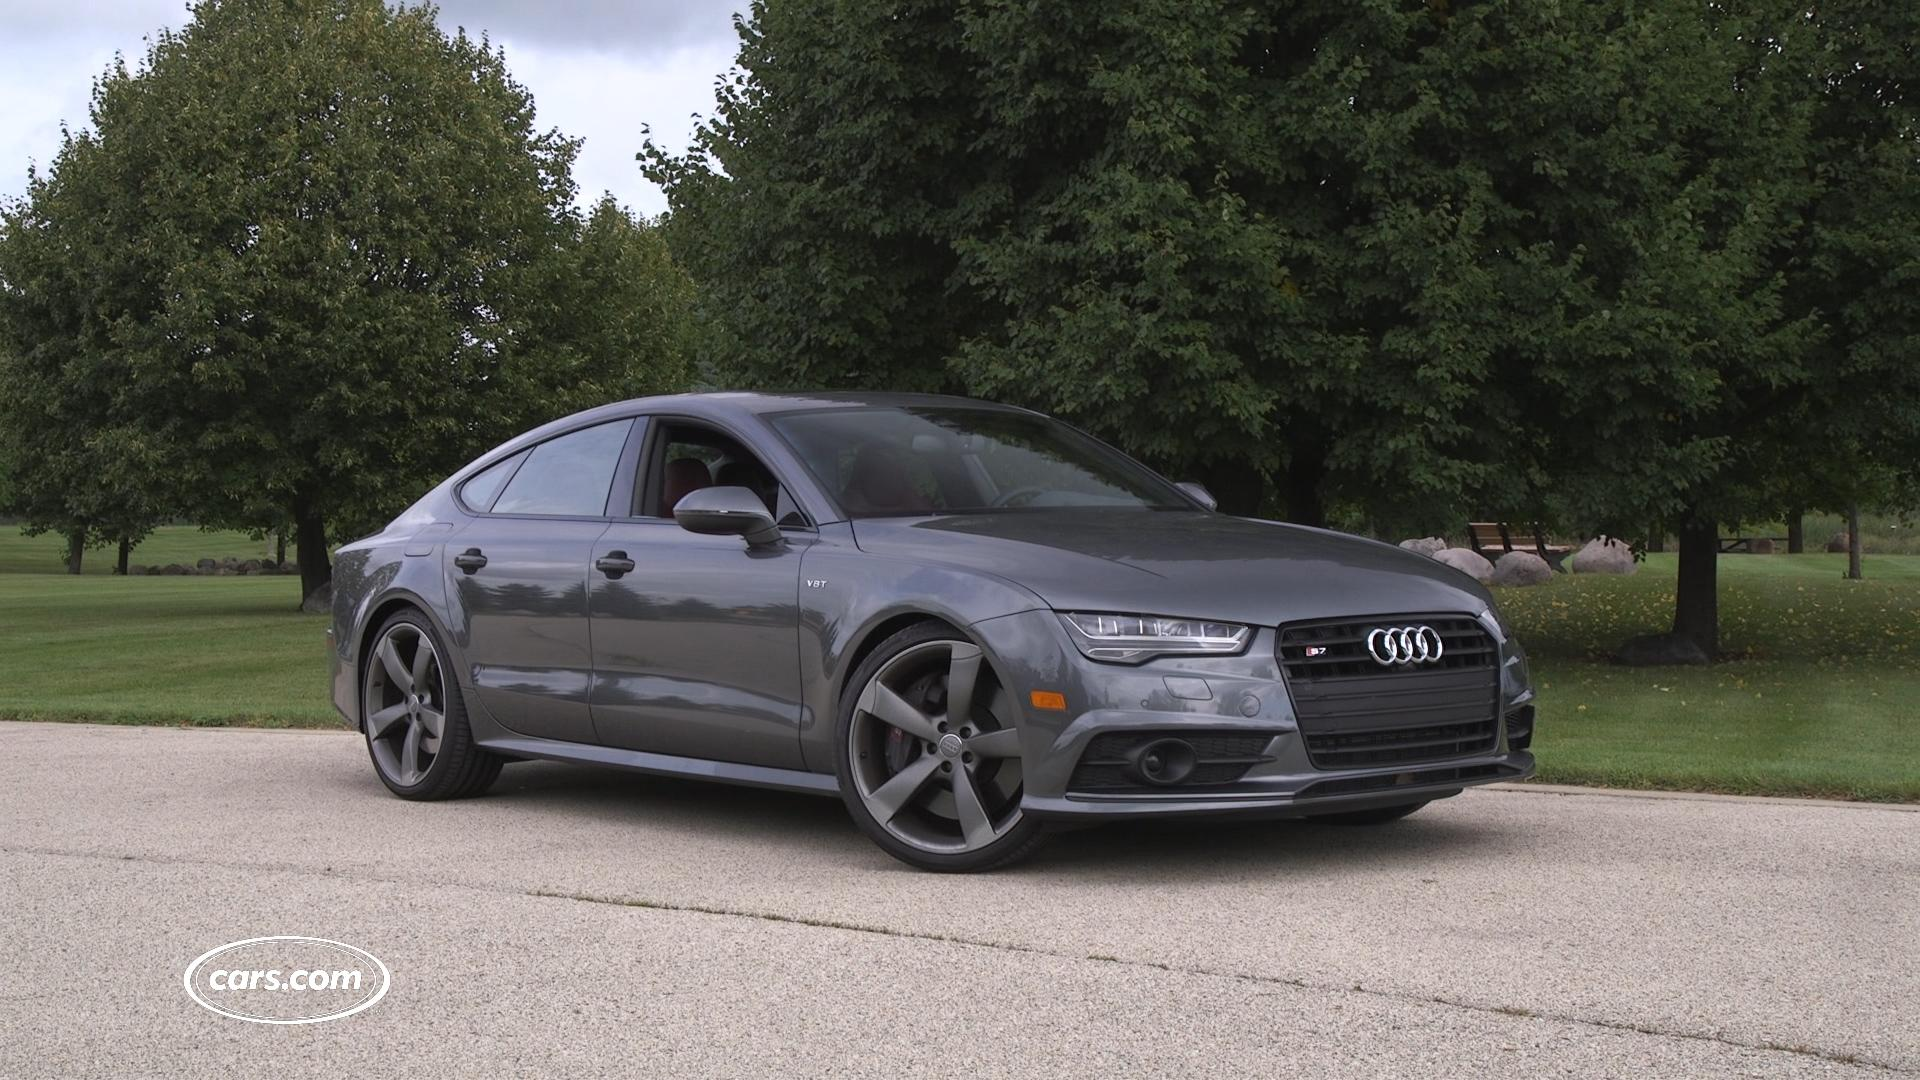 עדכני 2016 Audi S7 Expert Reviews, Specs and Photos | Cars.com VK-27